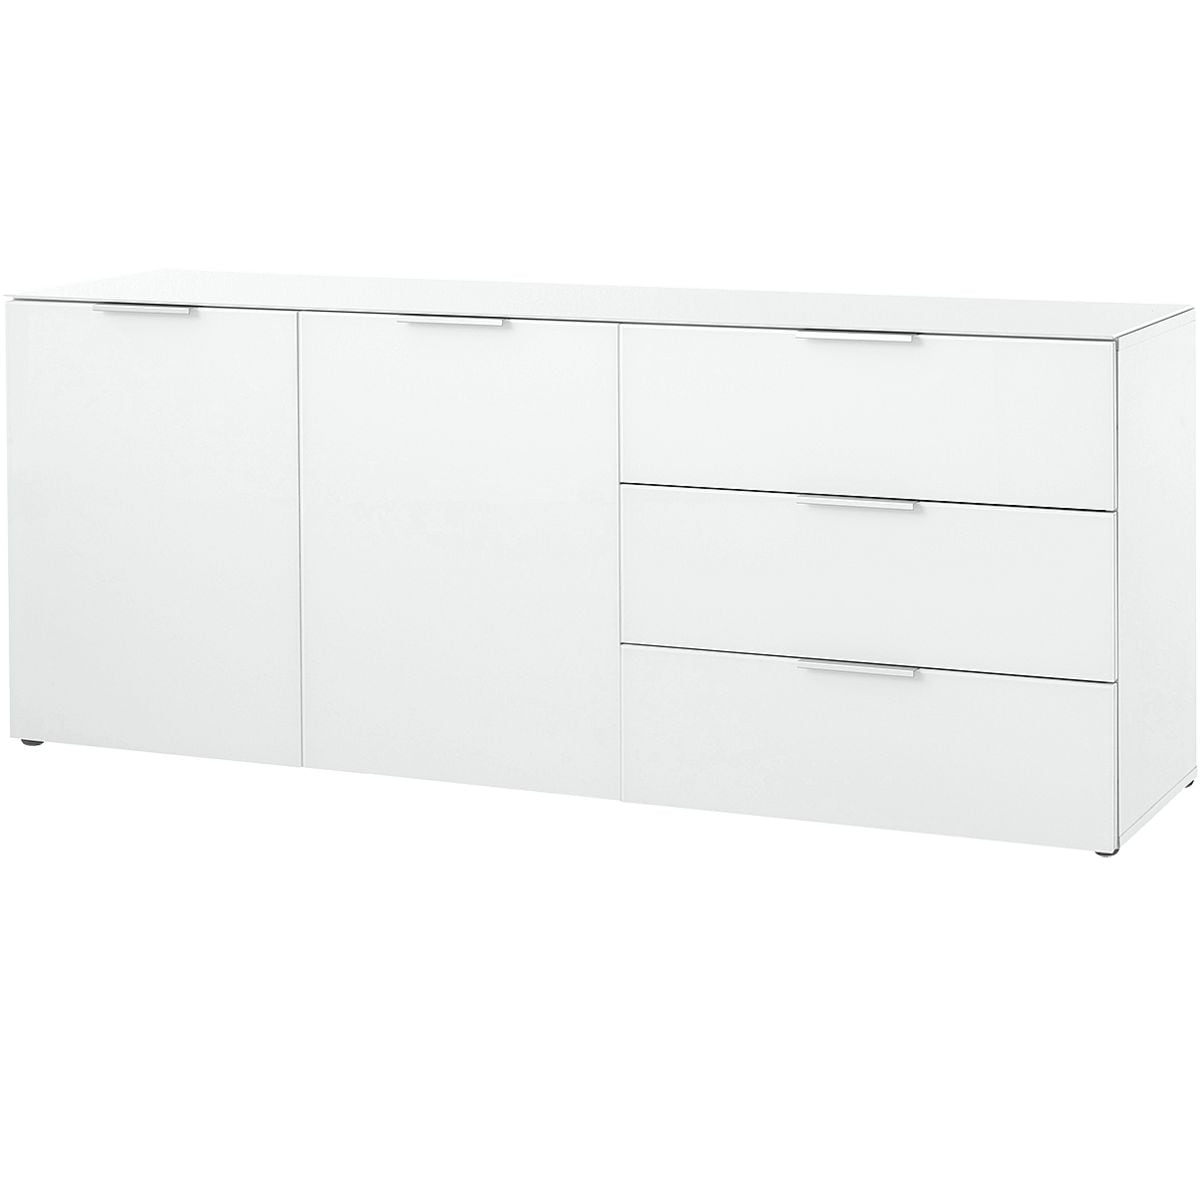 germania werke sideboard larino bei otto office. Black Bedroom Furniture Sets. Home Design Ideas